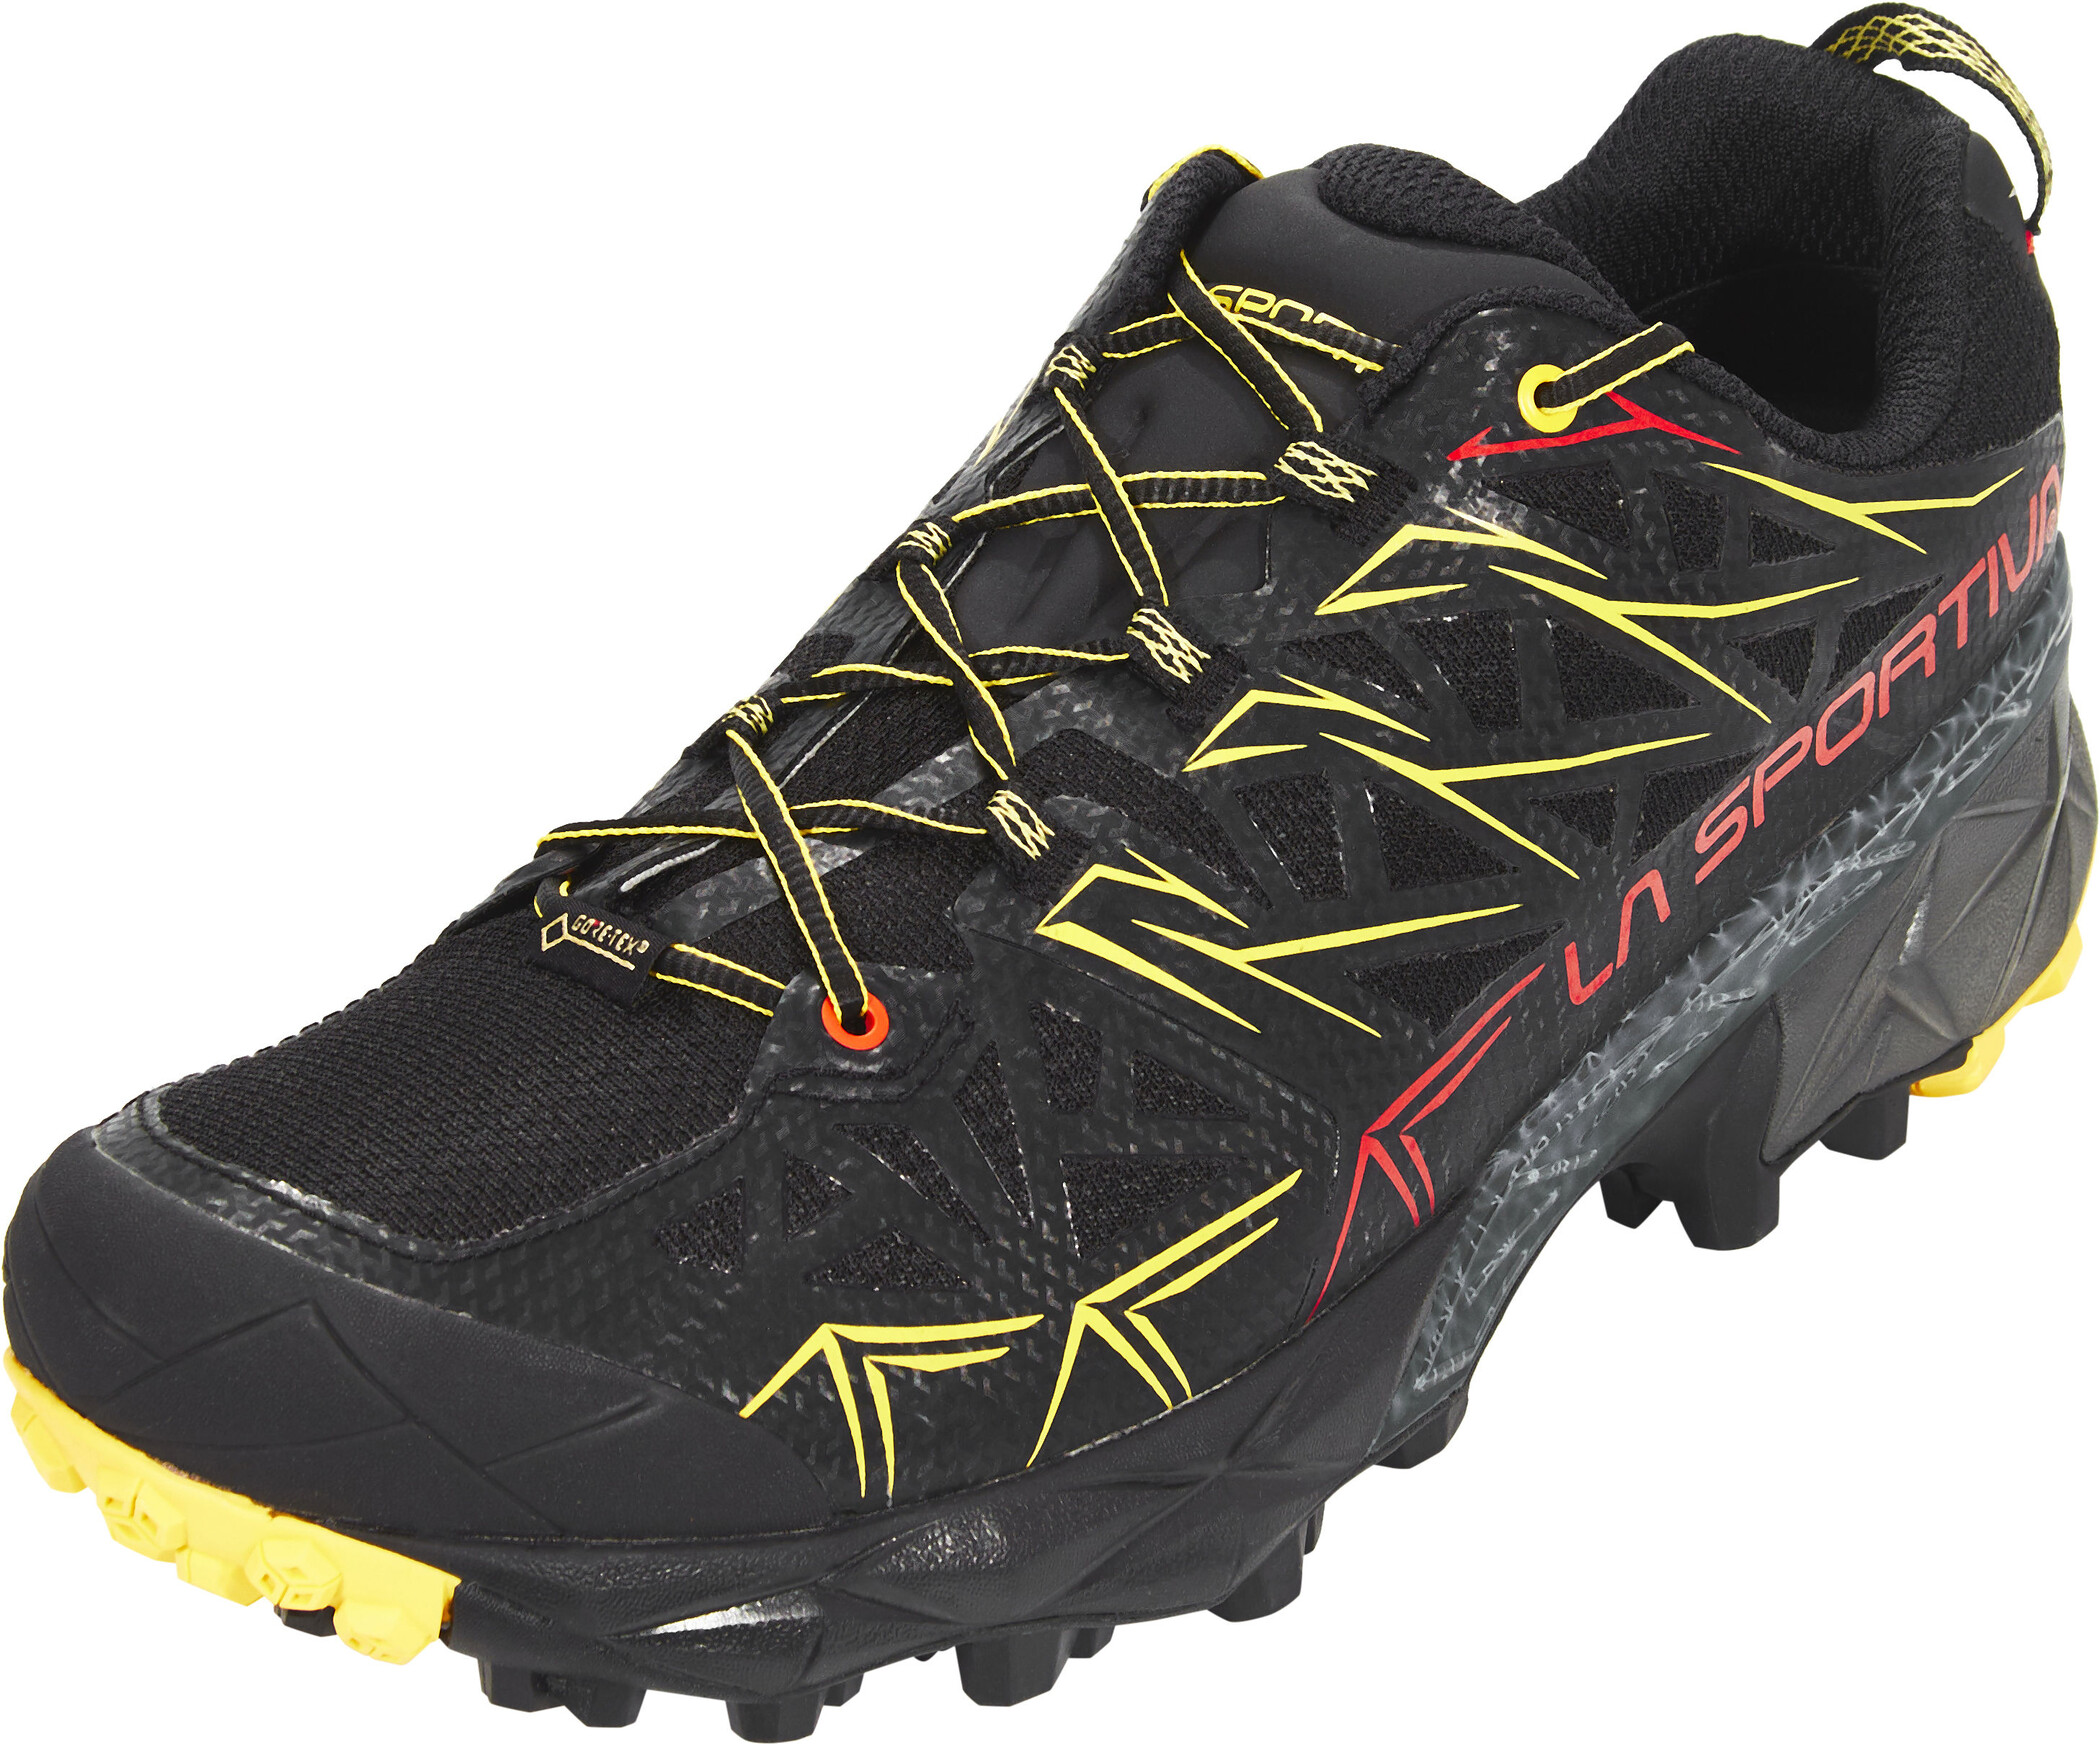 La Sportiva Mens Akyra Trail Running Shoes Trainers Sneakers Black Blue Sports